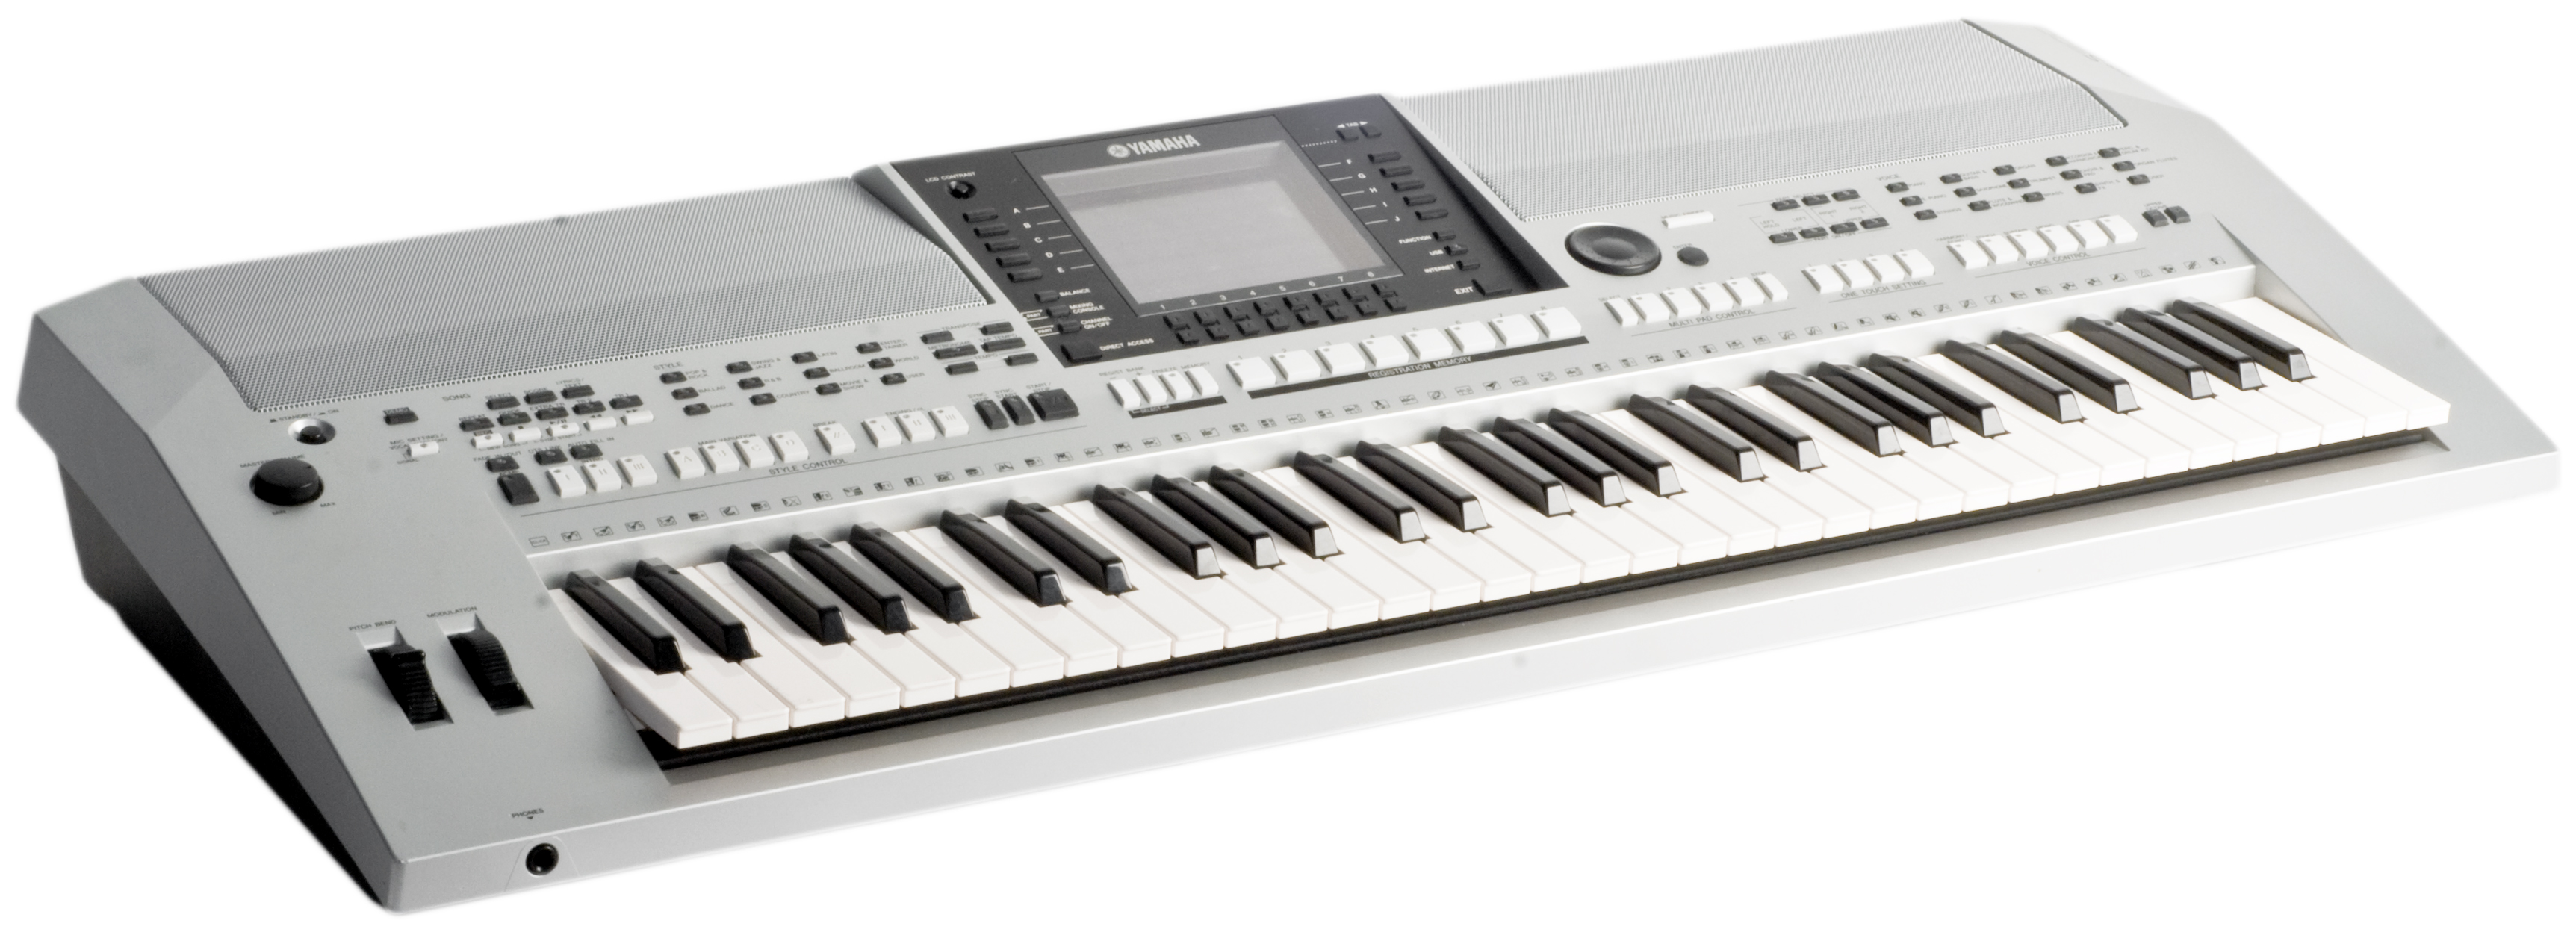 Indian styles for yamaha keyboard for Yamaha keyboard i425